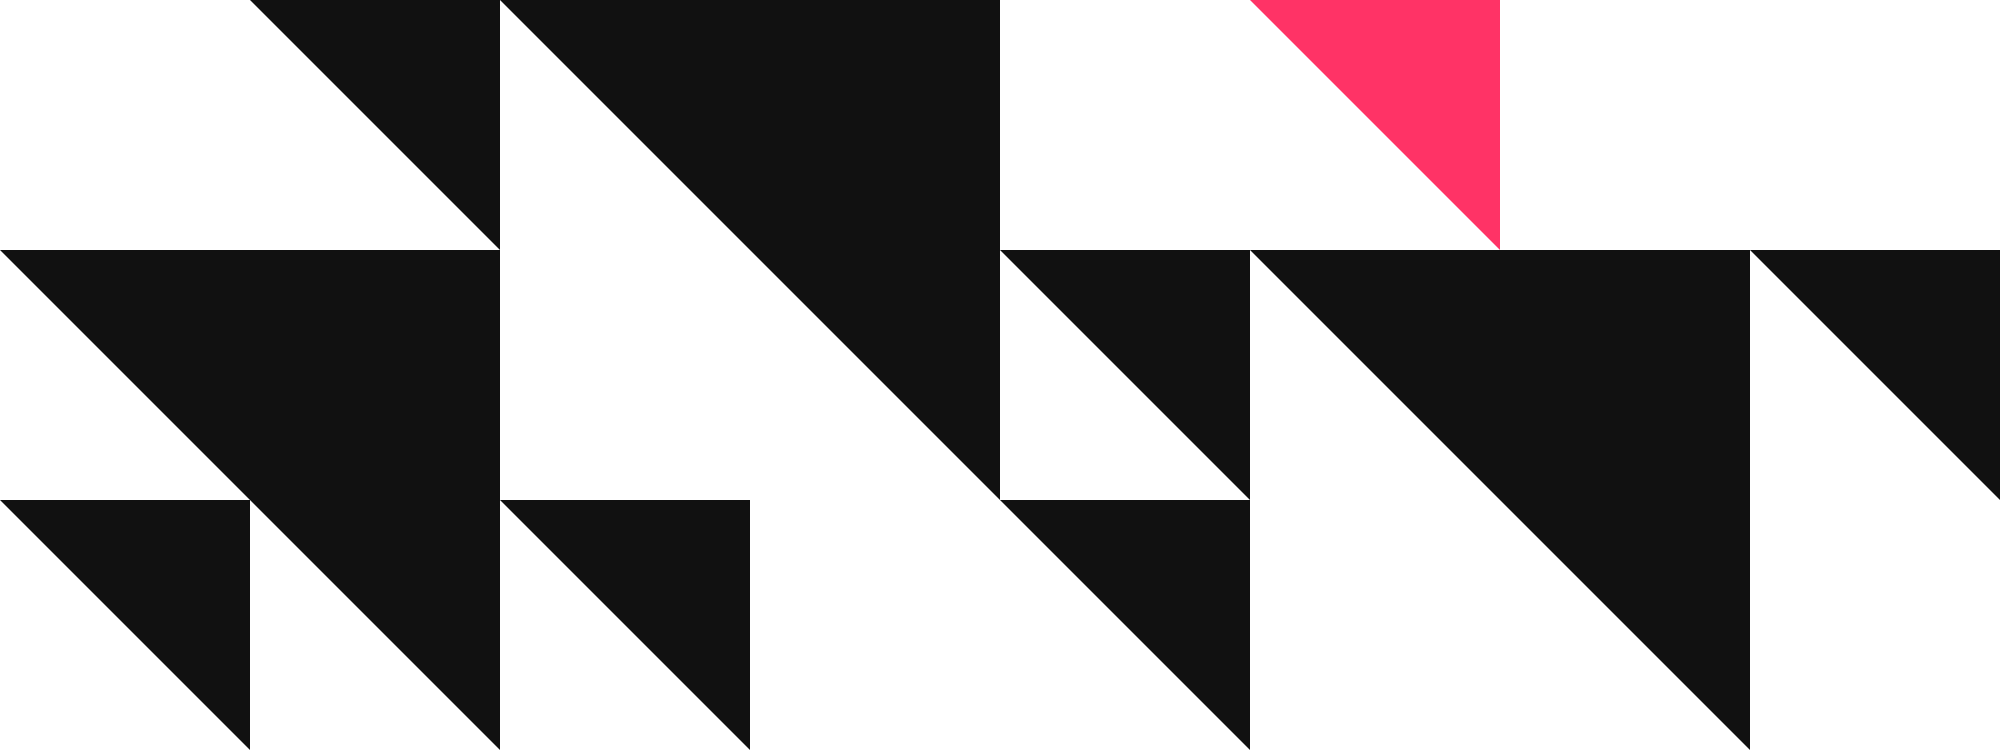 InVision. Announcing the Design Forward Fund by InVision